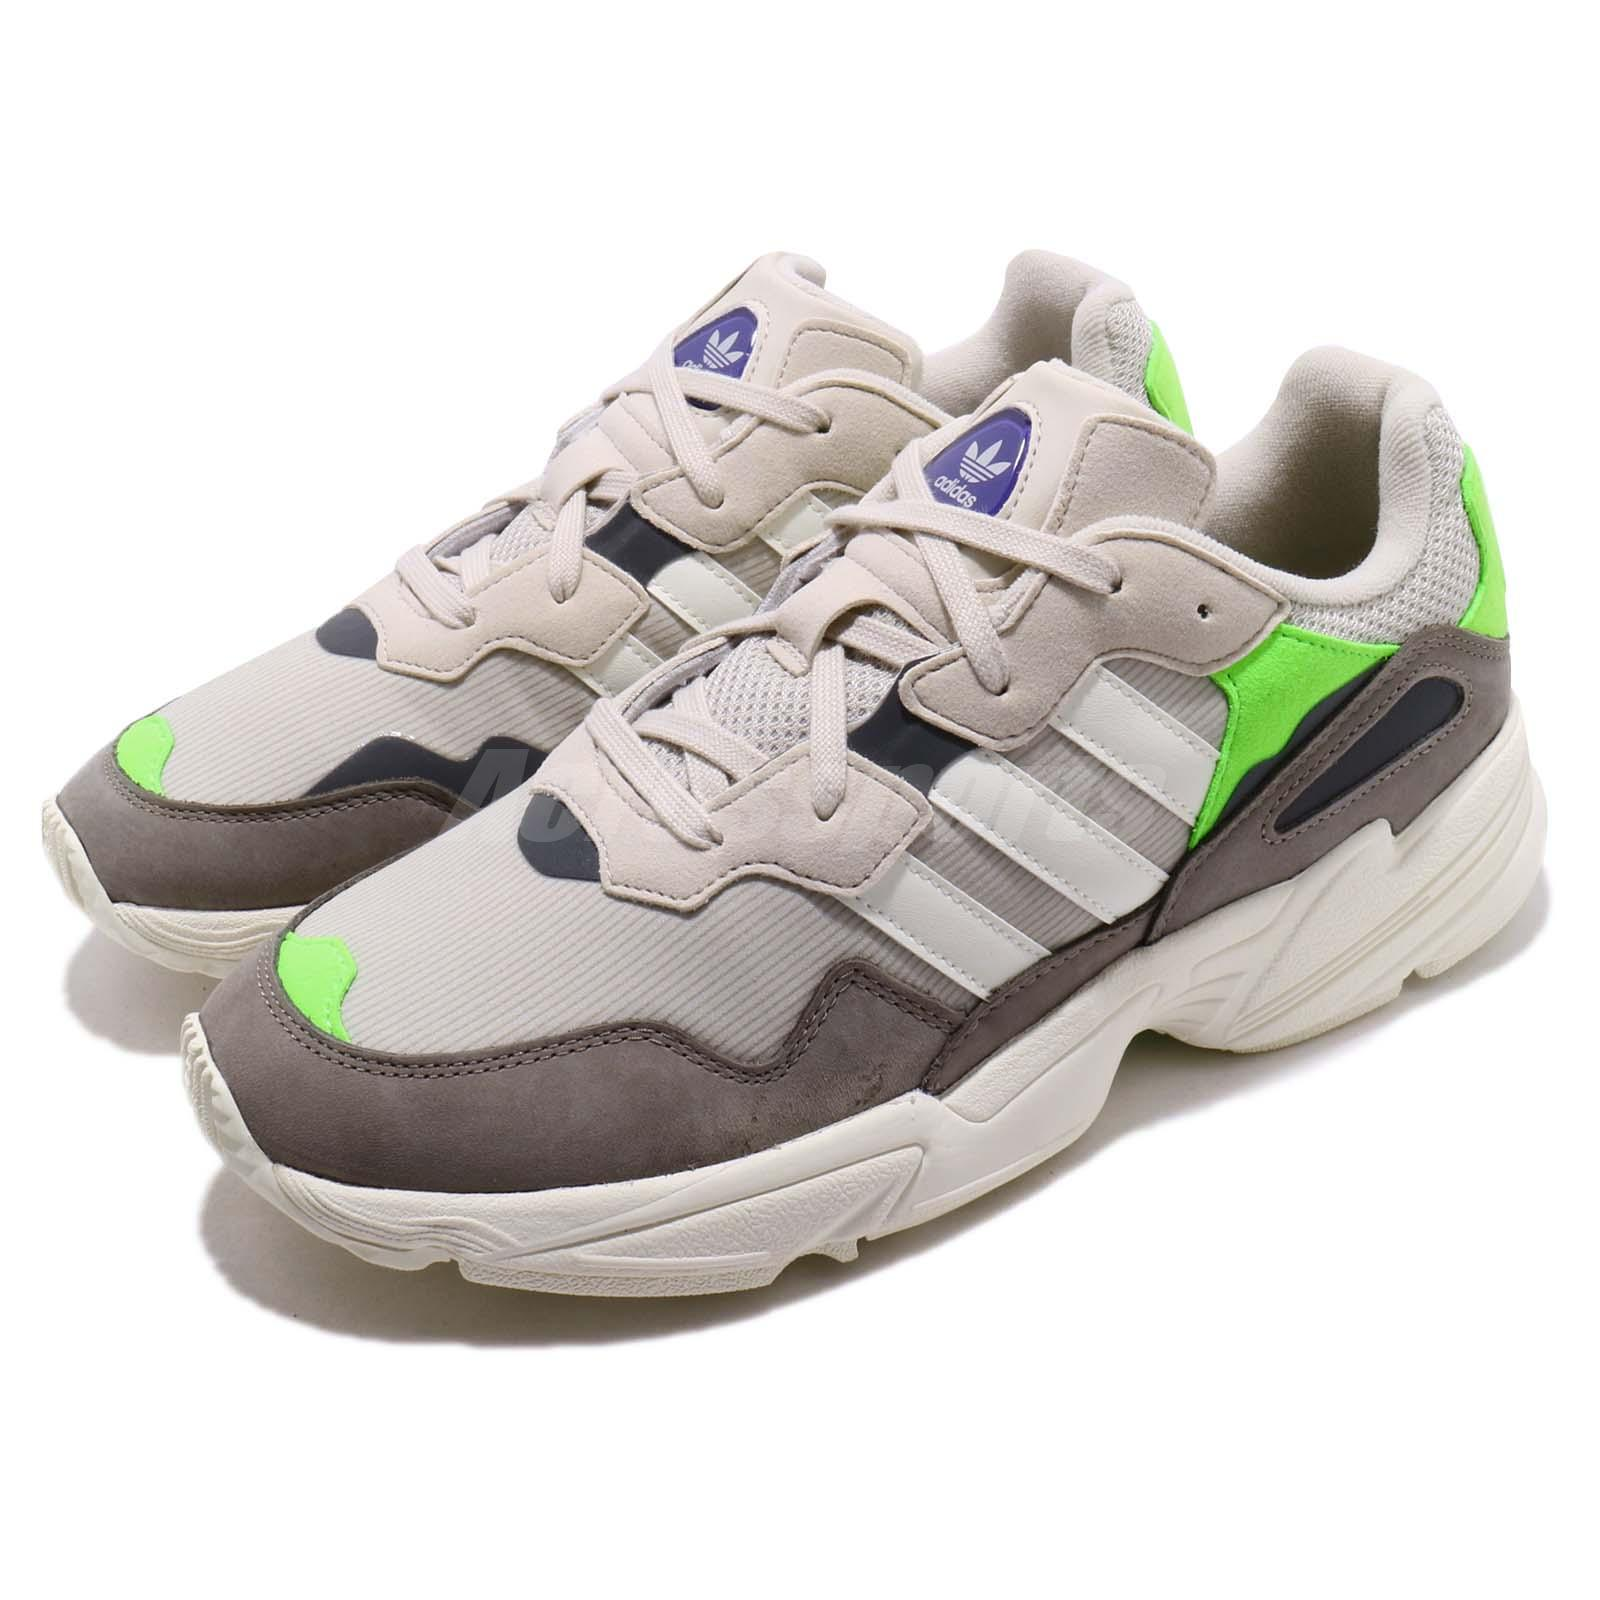 Details about adidas Originals Yung 96 Solar Green Off White Grey Men Running Shoes F97182